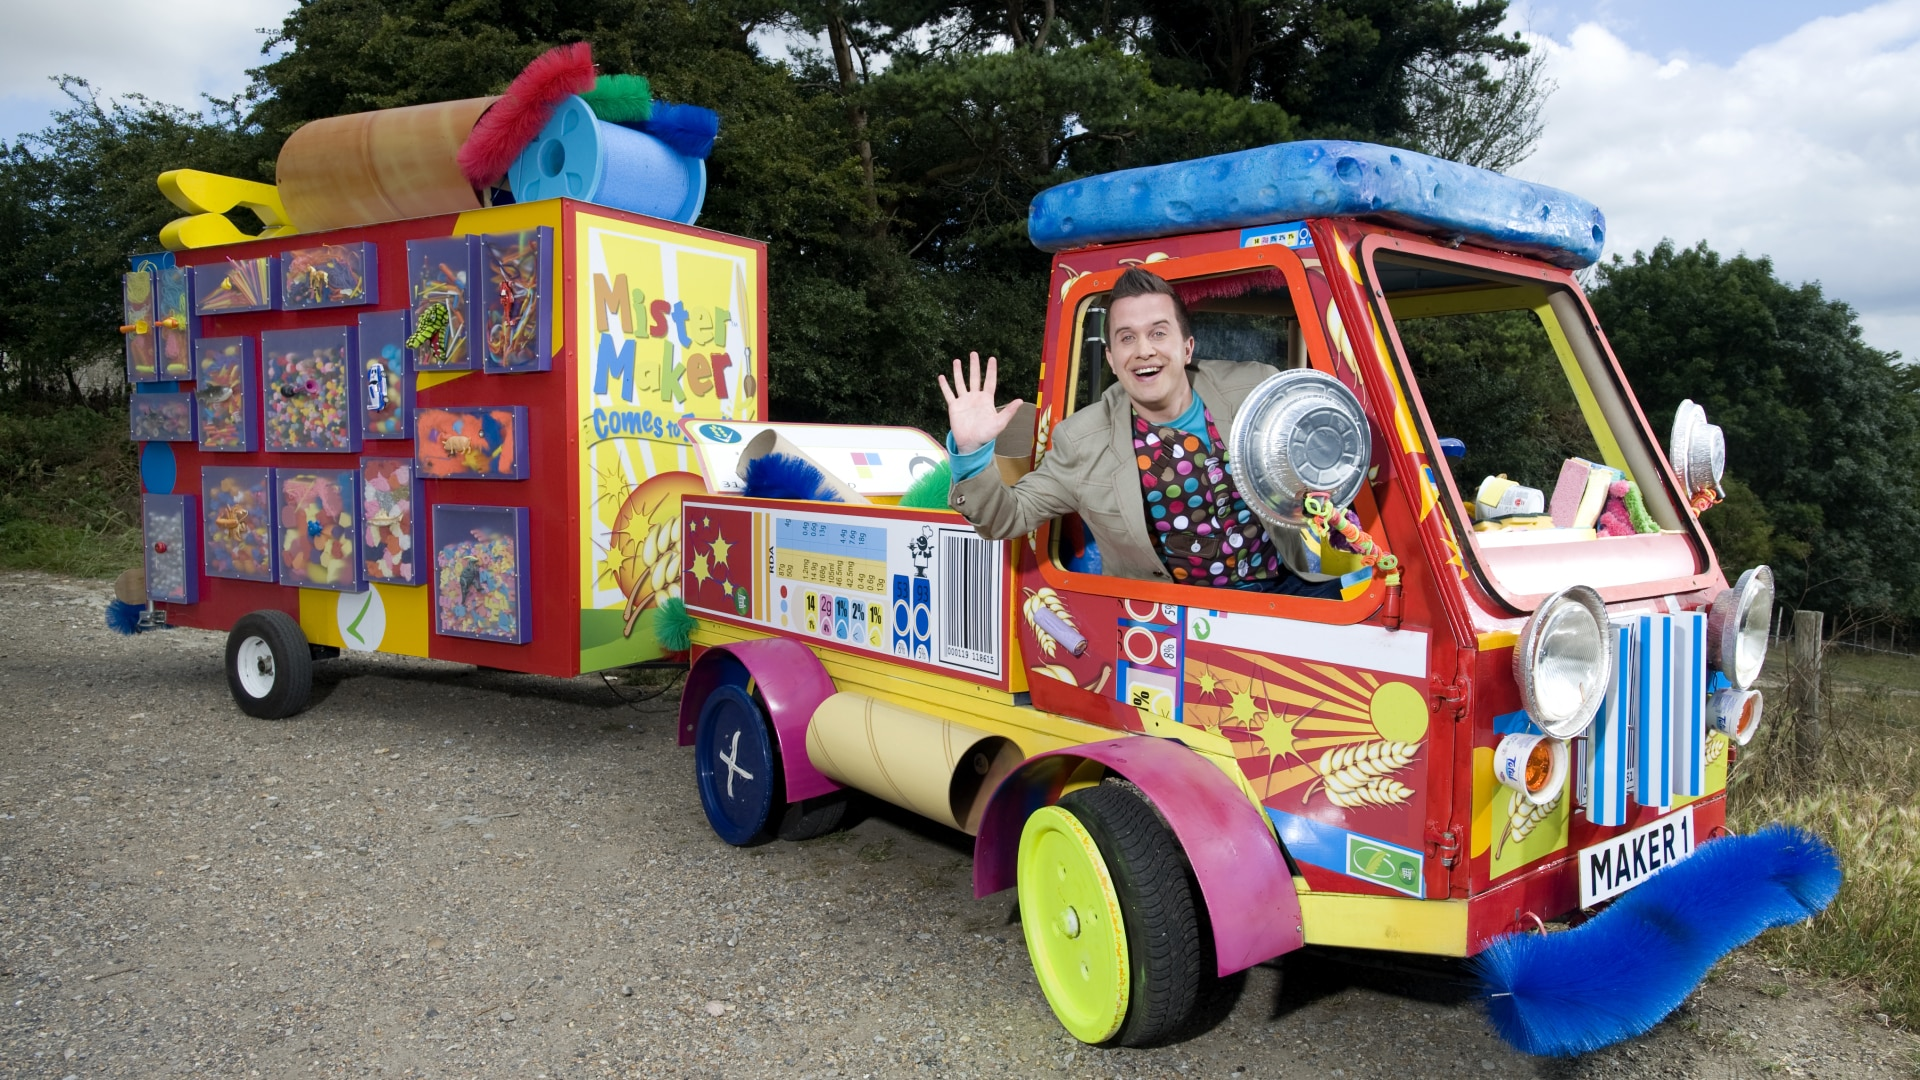 Mister Maker Comes To Town 1